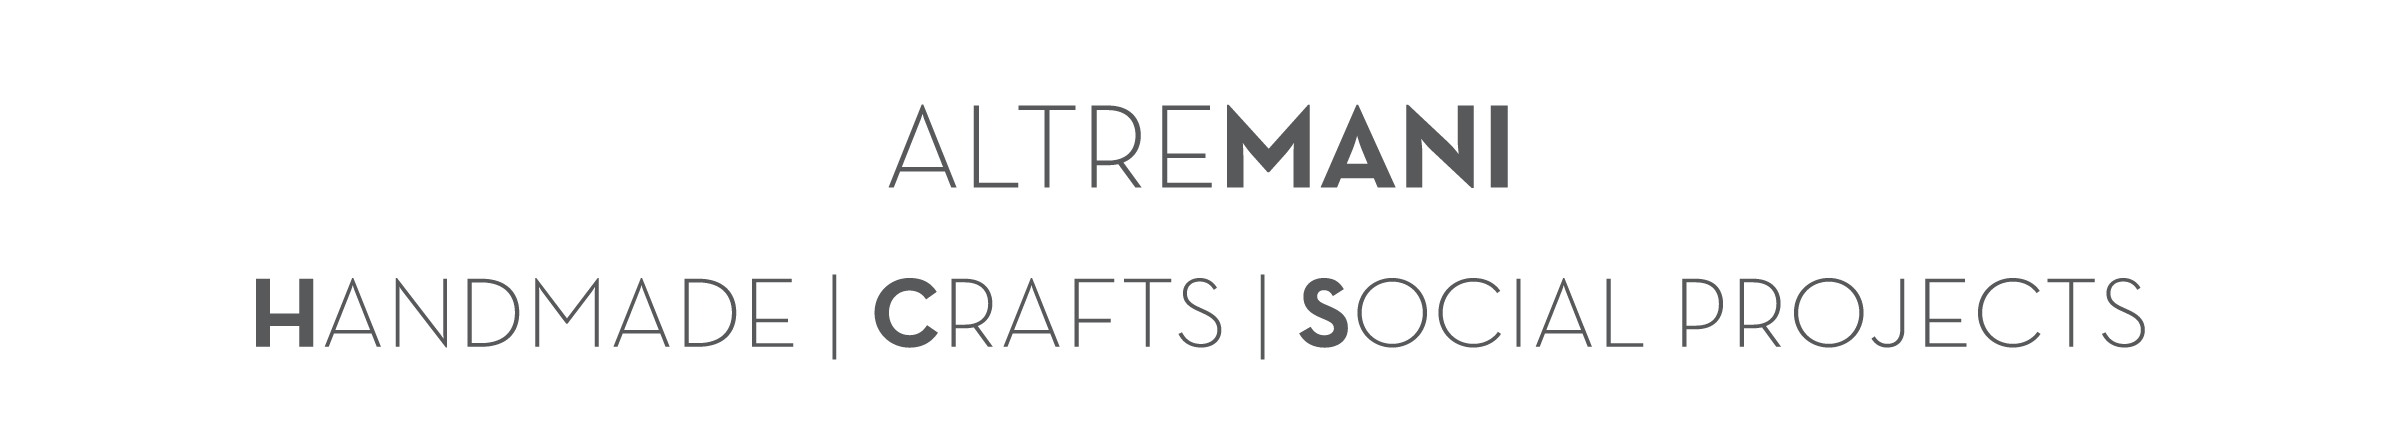 altremani_handmade_crafts_social_projects